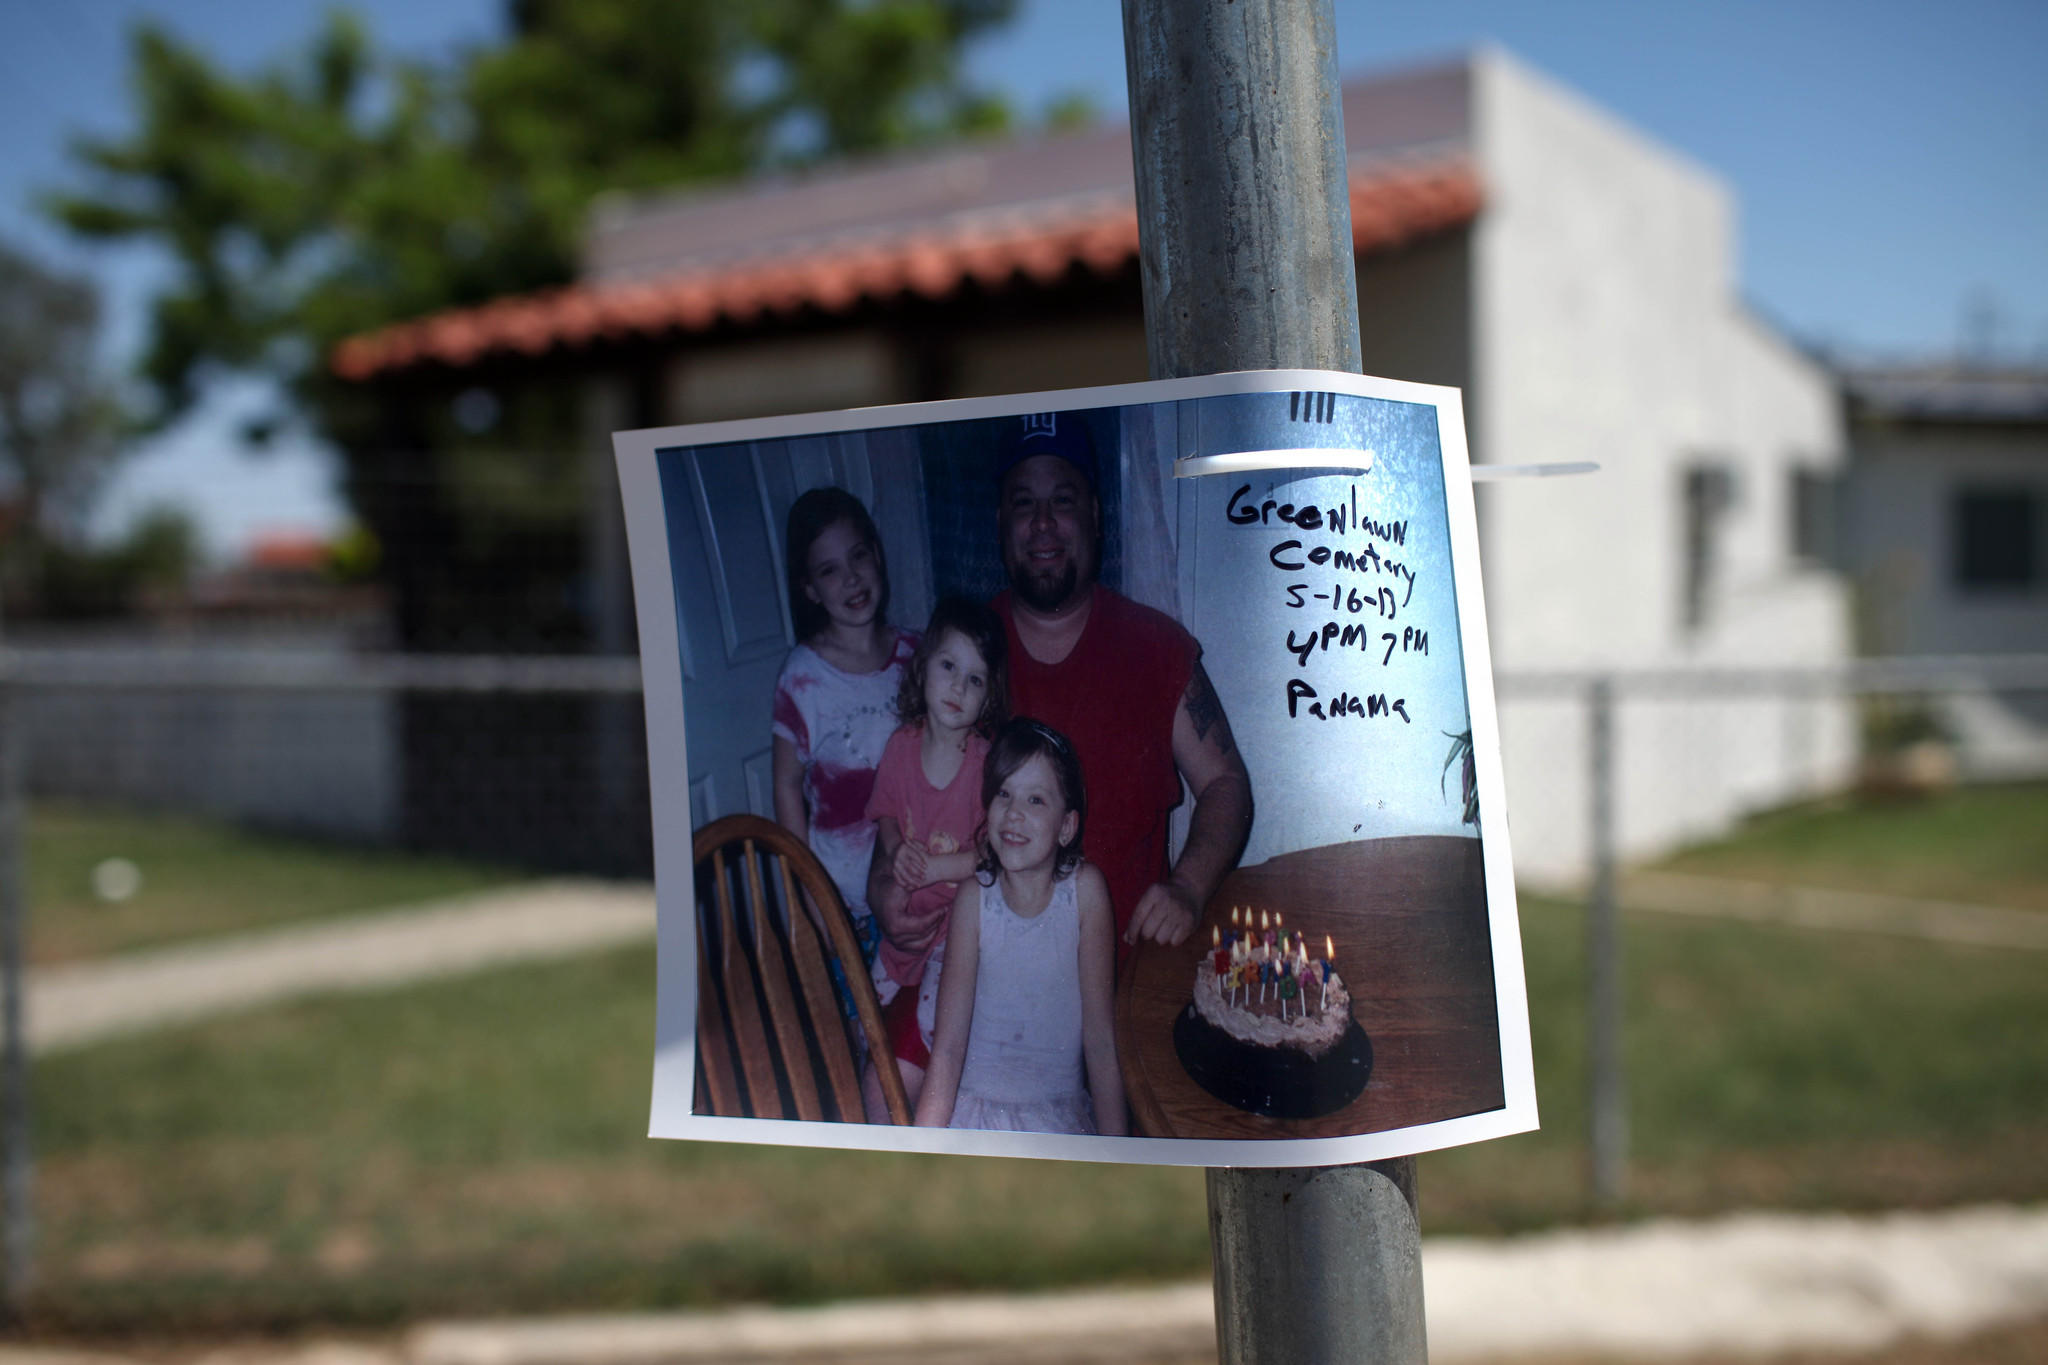 A photograph of David Sal Silva and his children was posted on a pole at the site of his beating last year. The date and time of a wake is written across it.